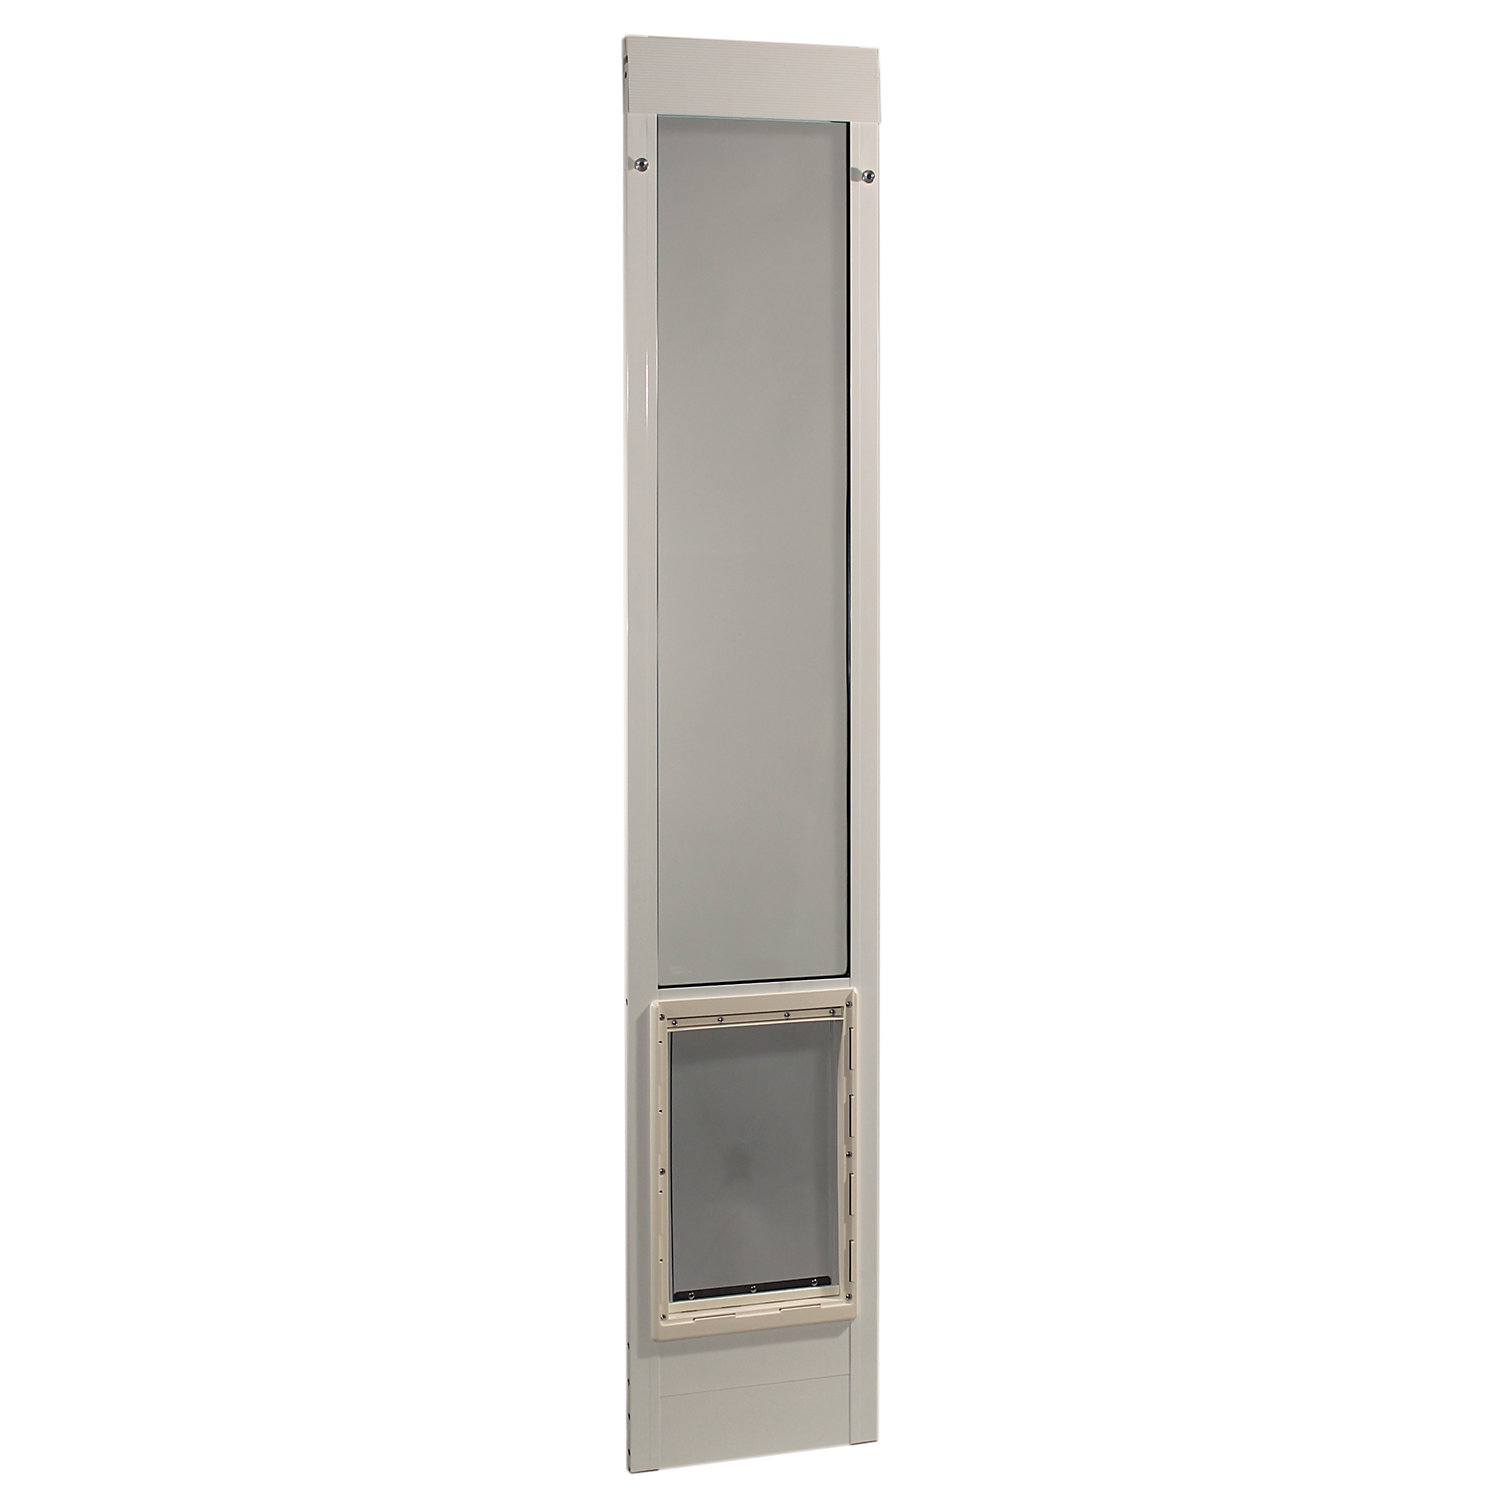 Perfect Pet 75 Pet Patio Door in White